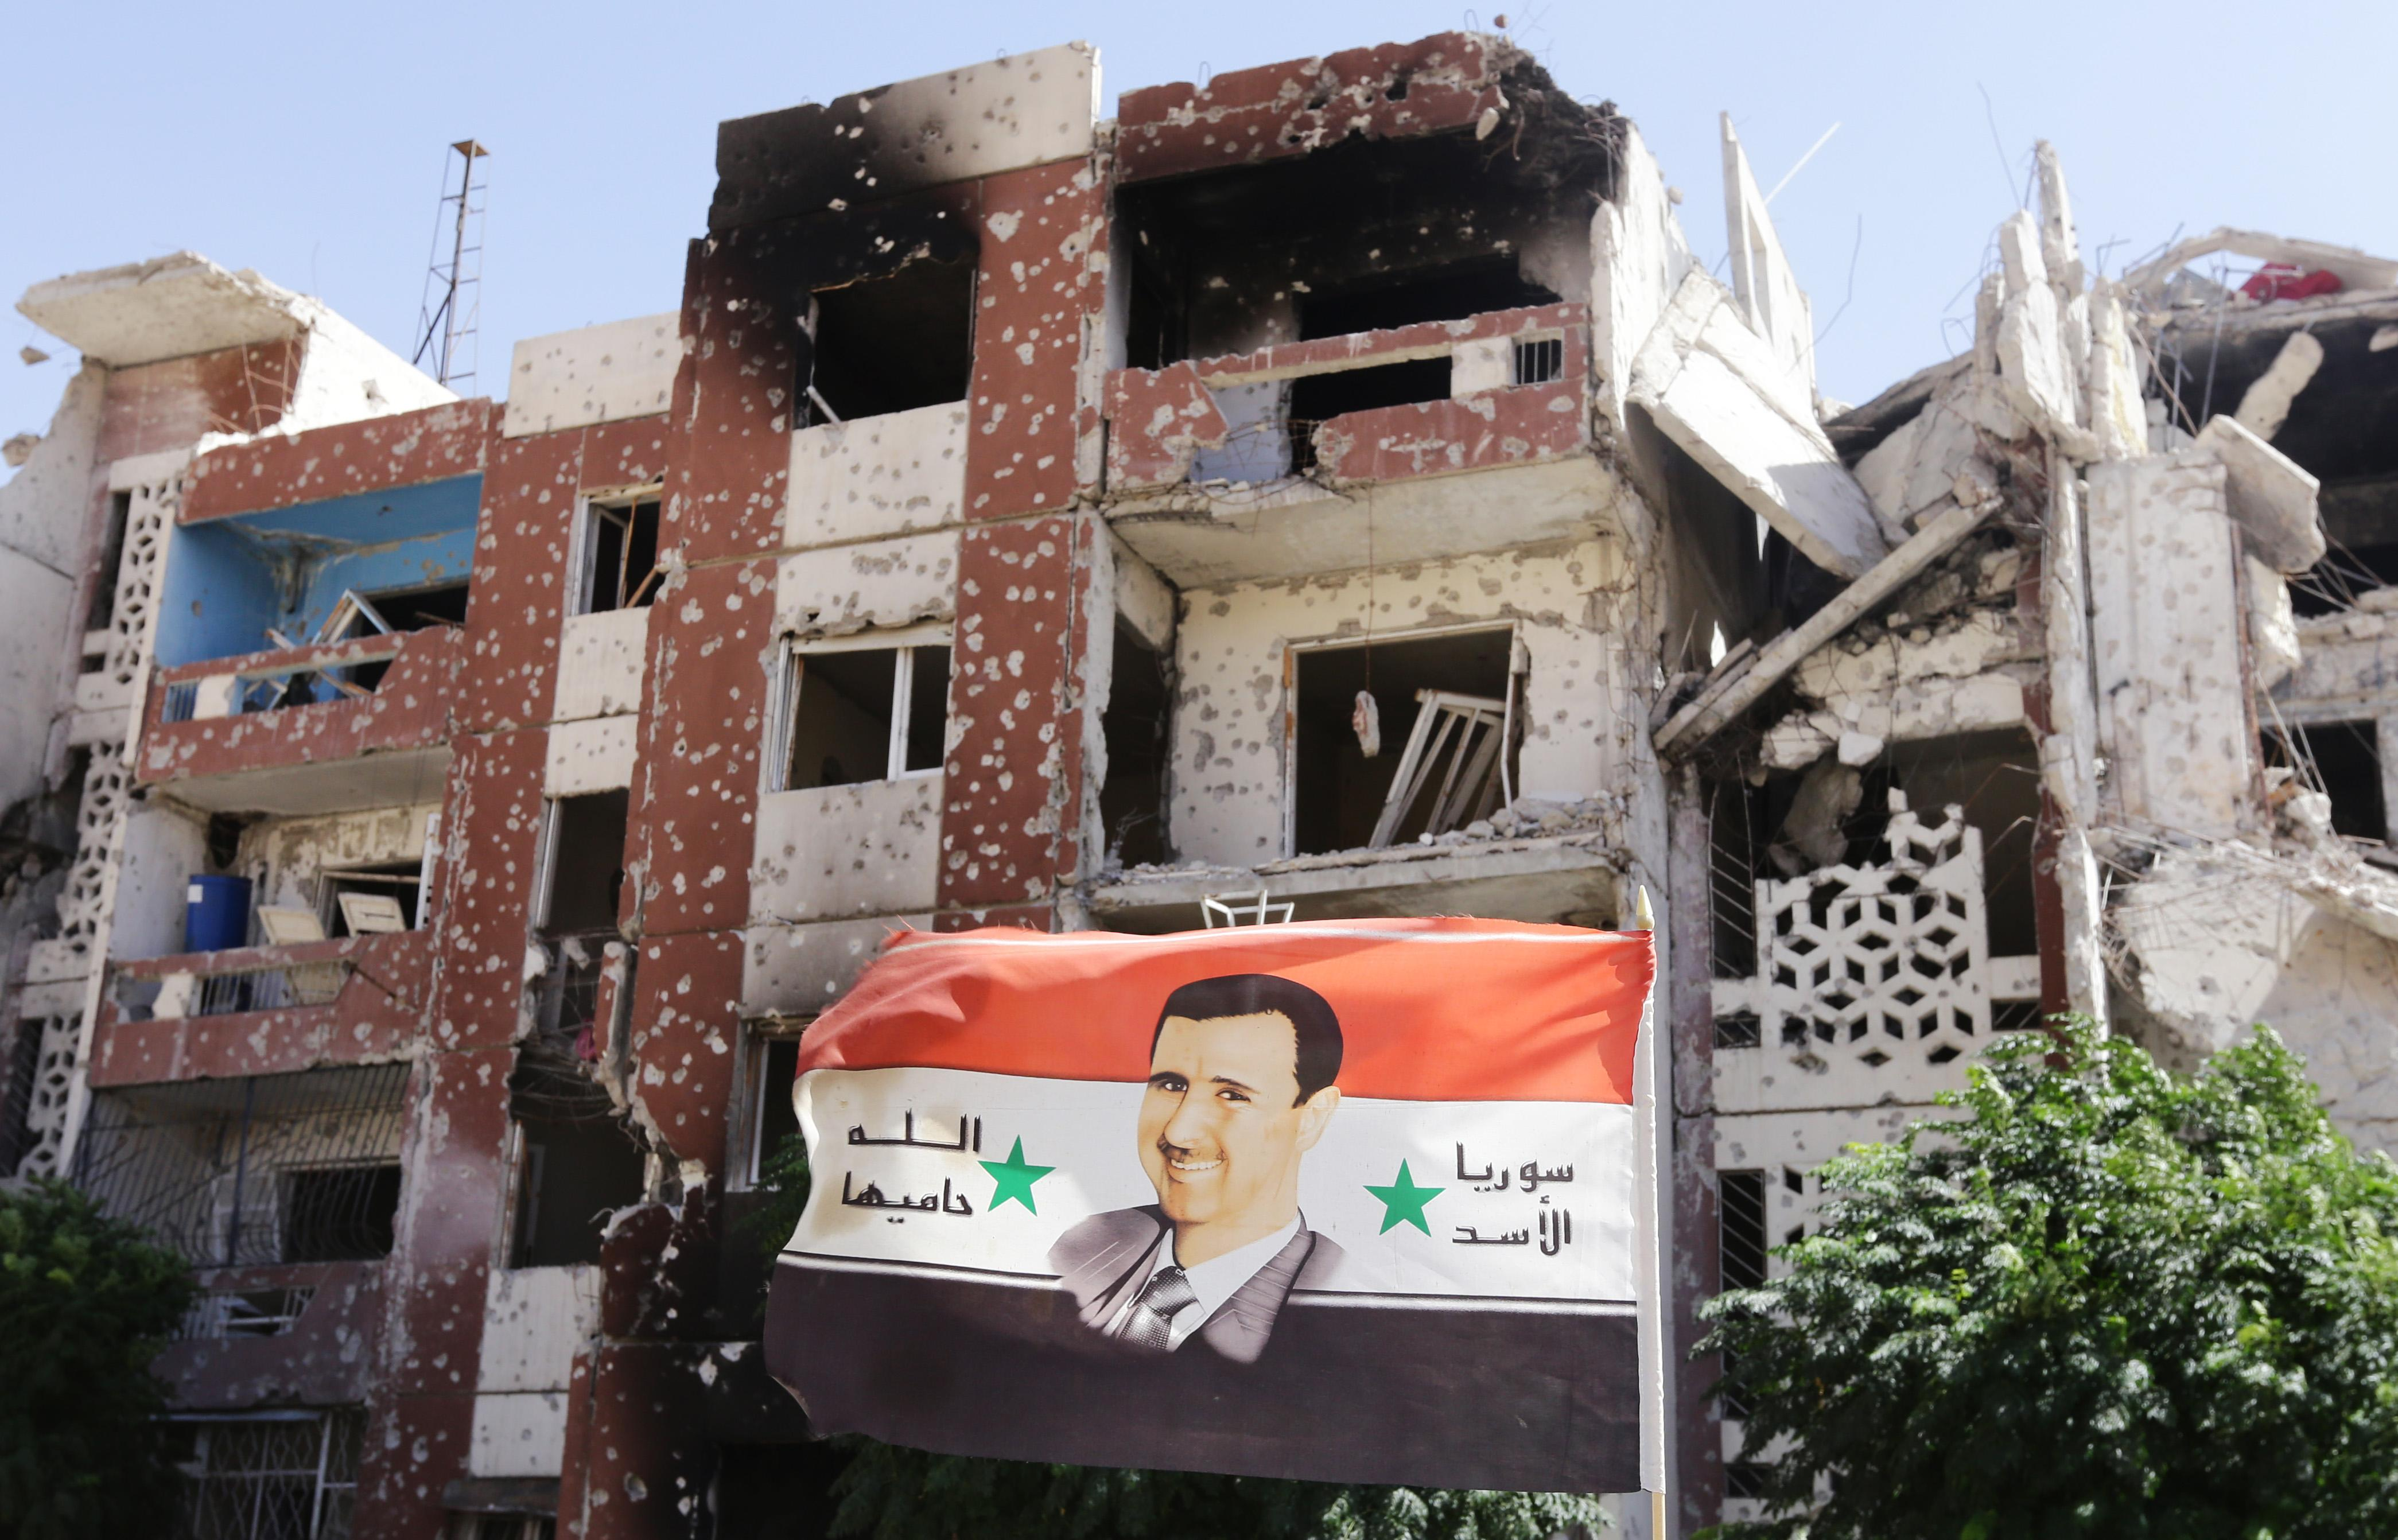 A flag showing President Bashar al-Assad flutters near damaged buildings in Adra, Syria, on September 25, 2014 (AFP Photo/Louai Beshara)